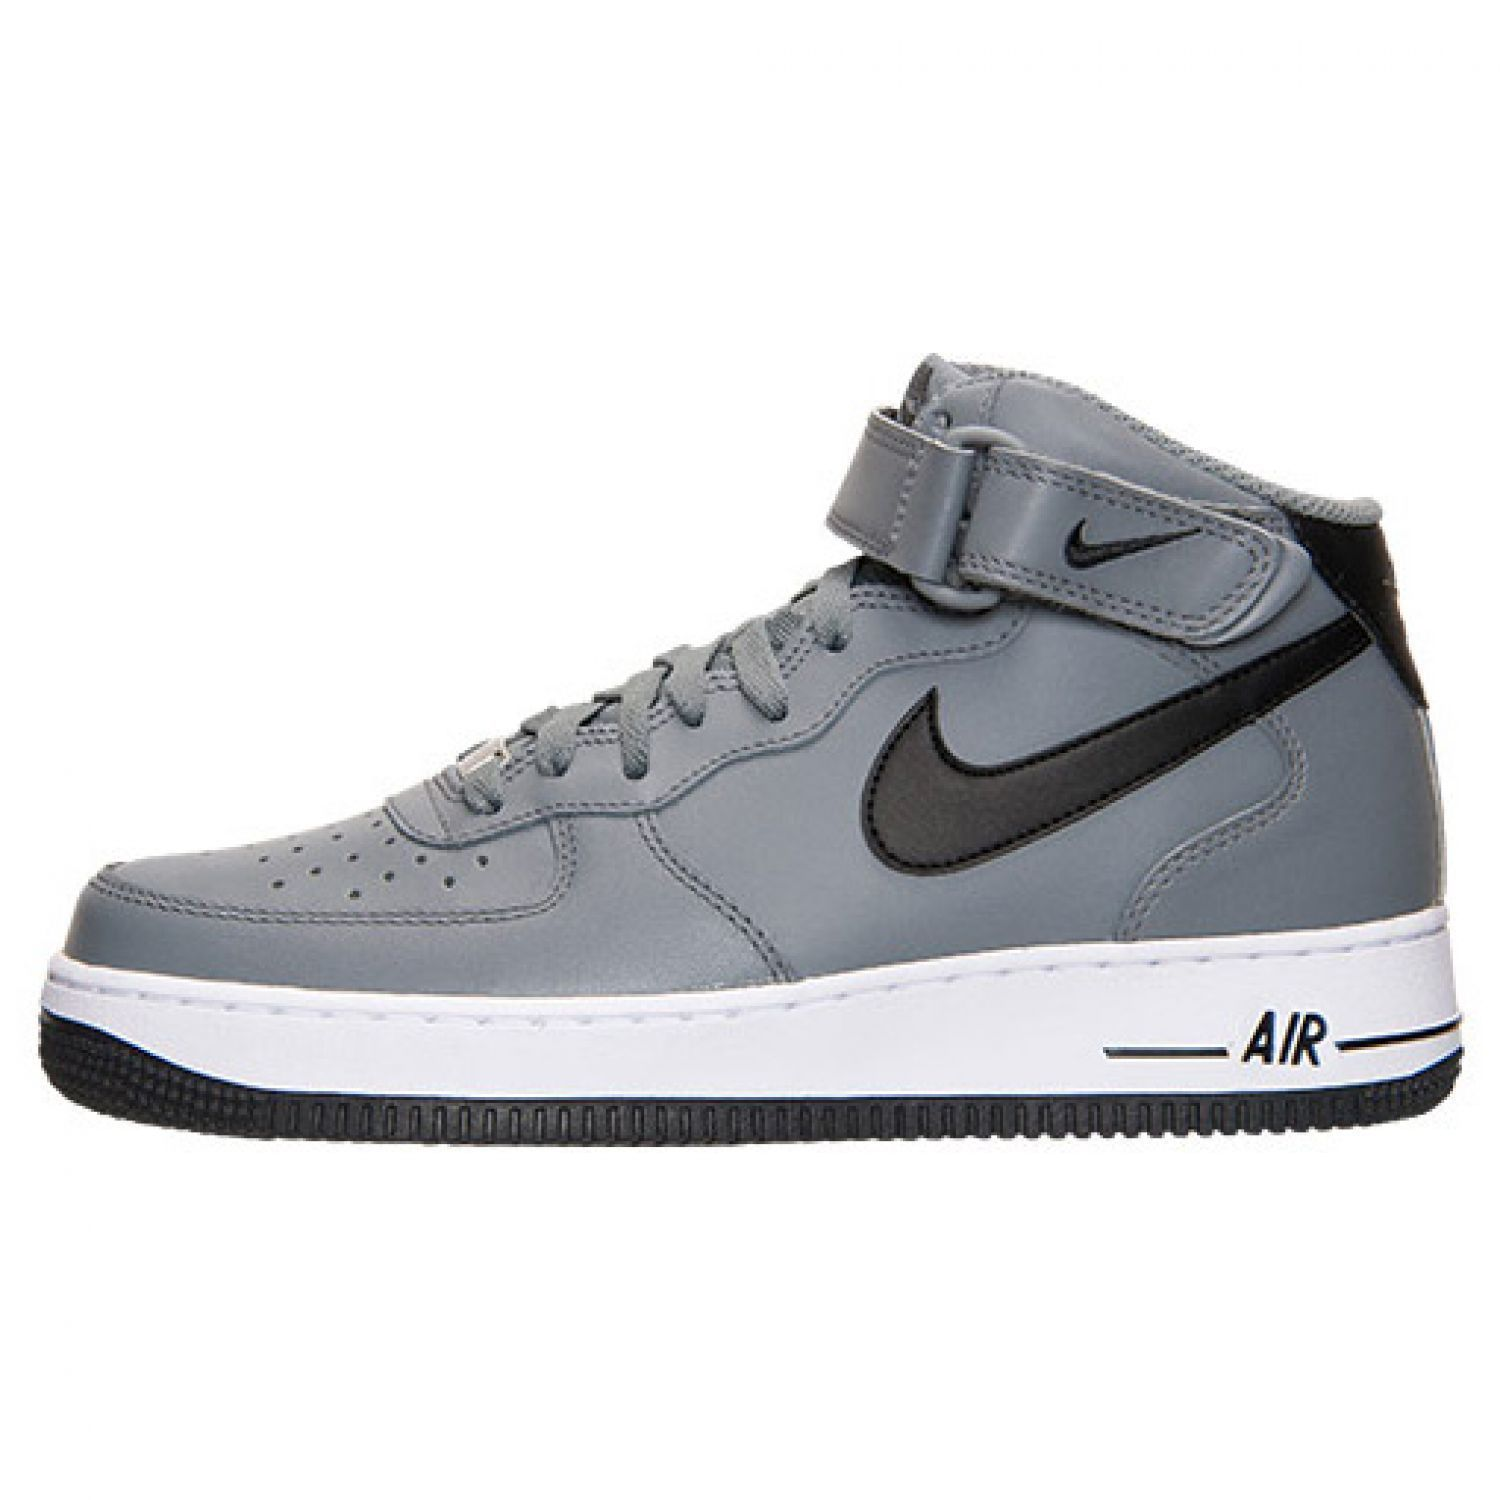 MEN'S NIKE AIR FORCE ONE 1 '07 MID SHOES SIZE 12 Grey Black White 315123-026